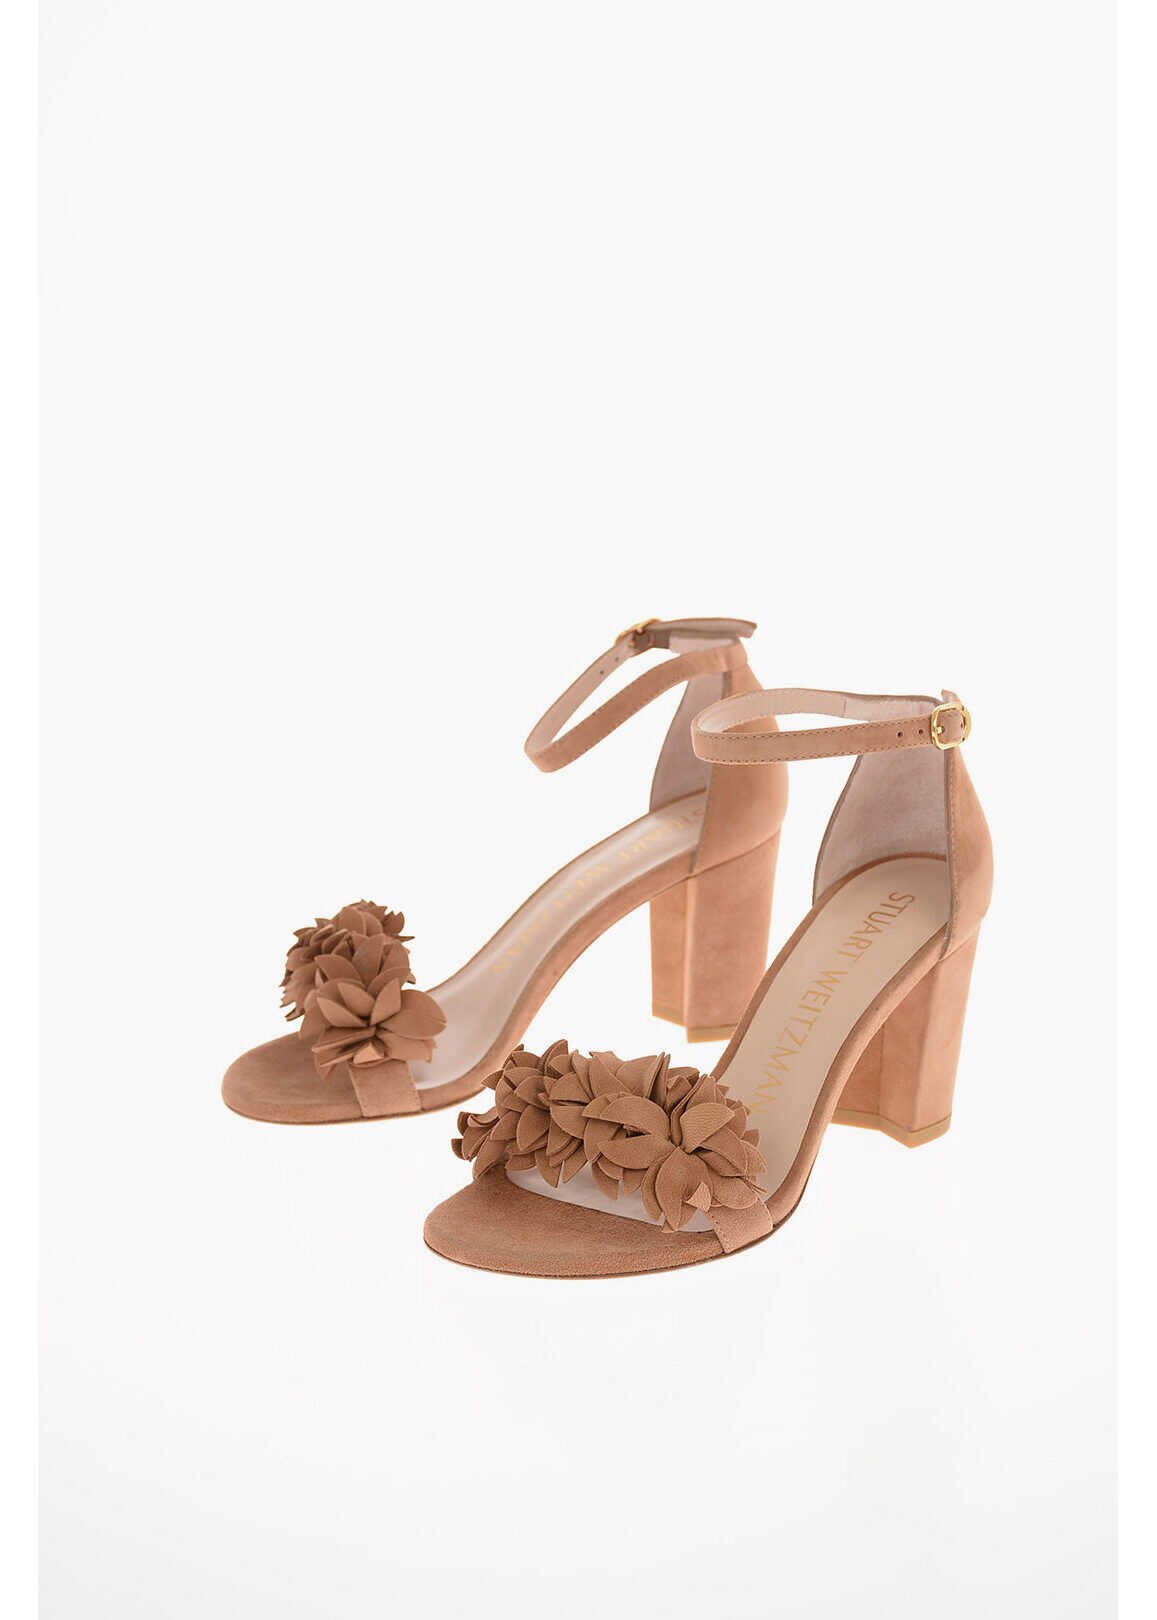 Stuart Weitzman Suede NERYLNUDE Sandals with Floral Detail 8 Cm BROWN imagine b-mall.ro